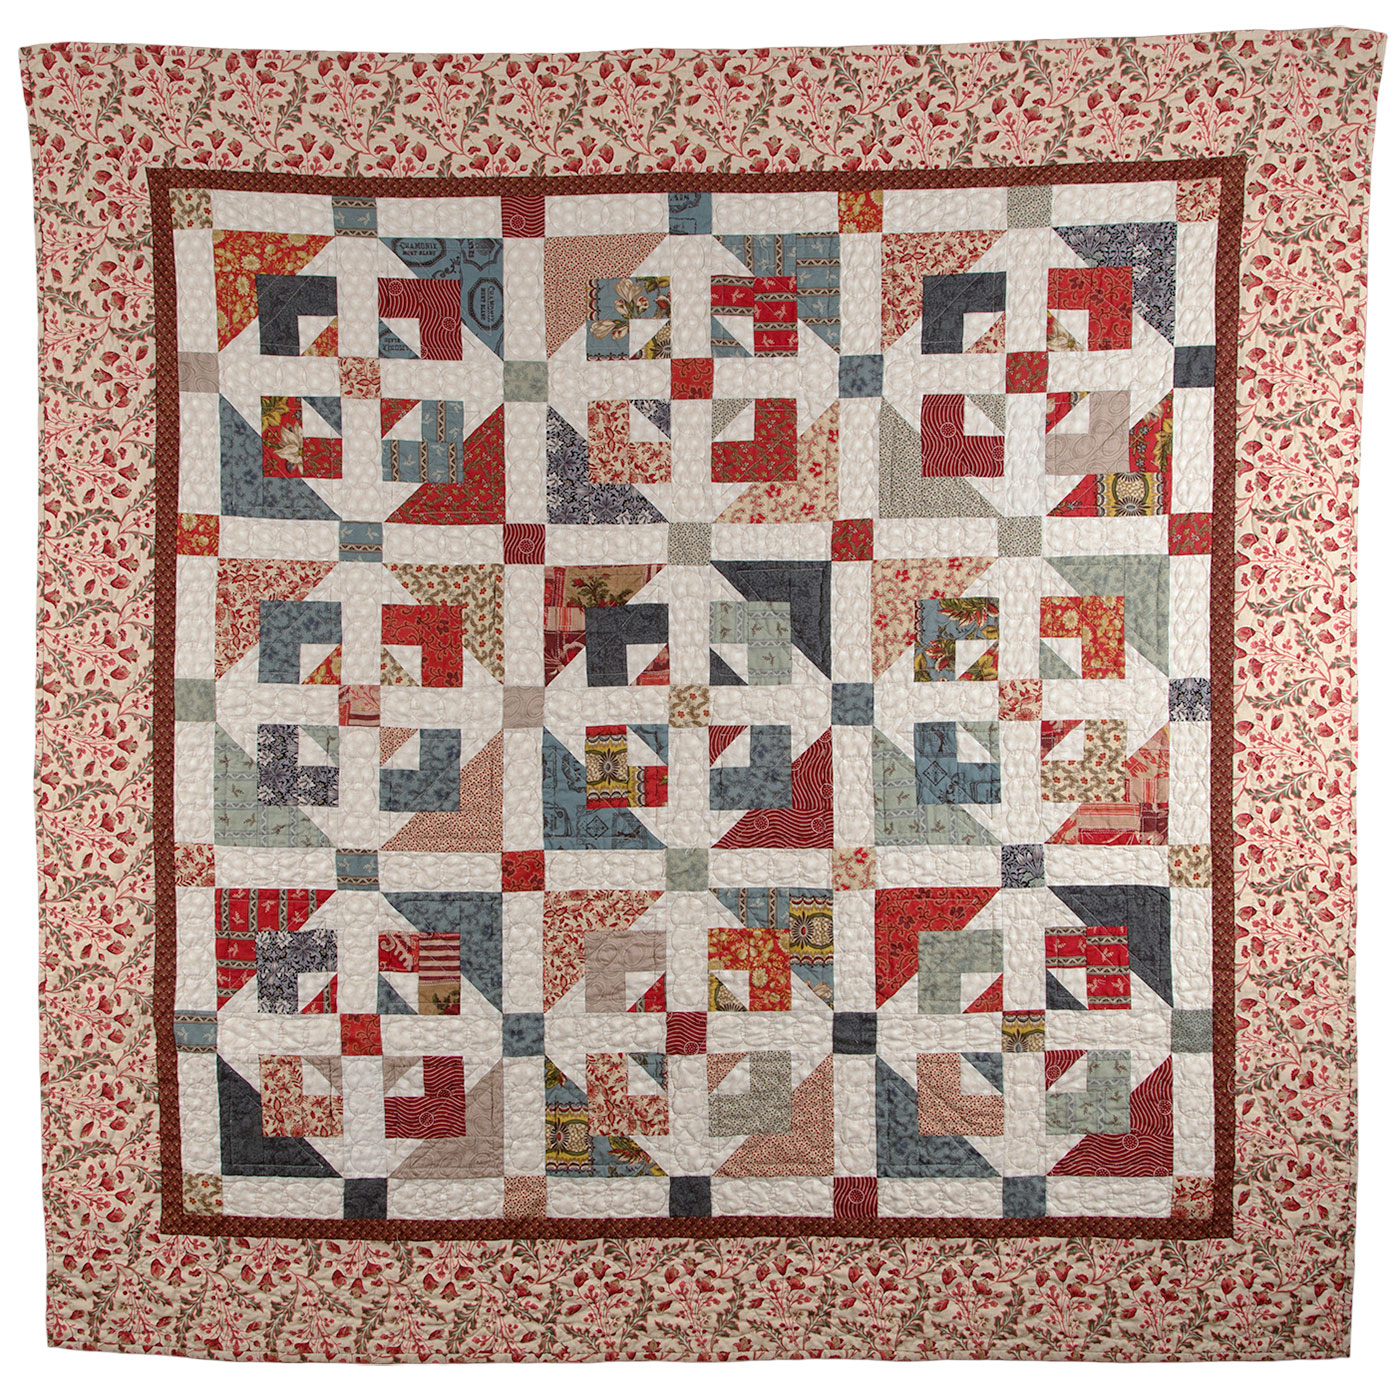 Episode 237: The Quilt in Progress not Progressing Episode